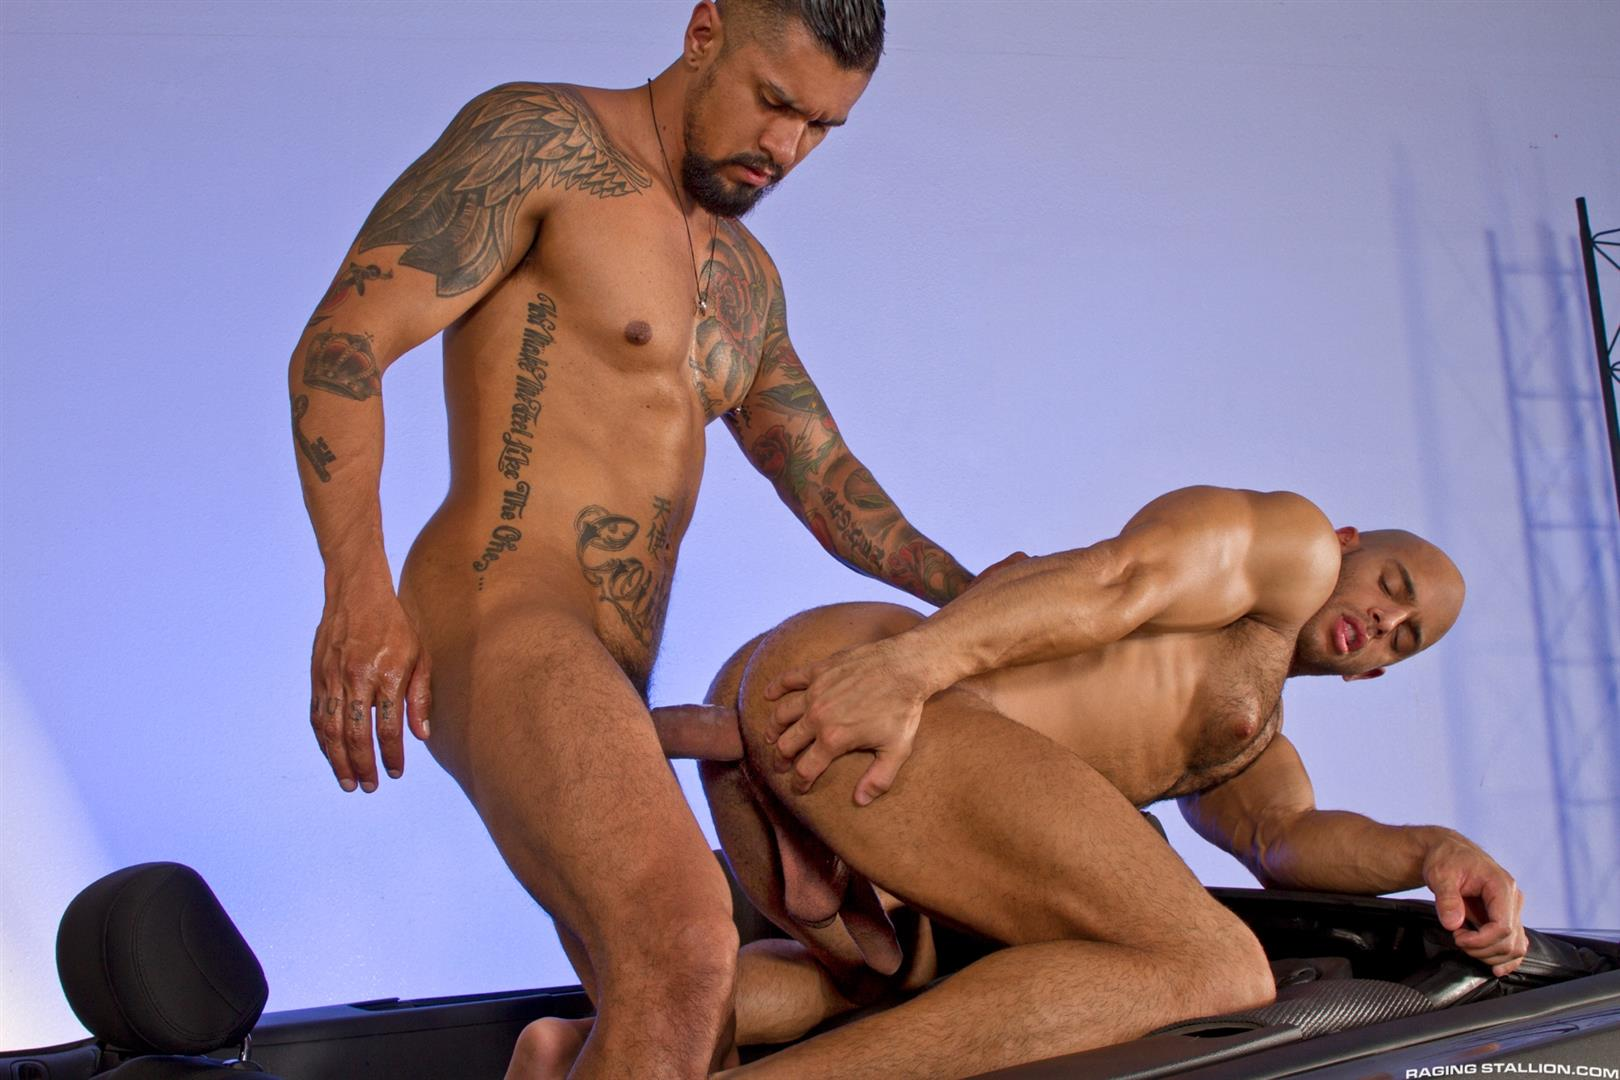 Raging-Stallion-Sean-Zevran-and-Boomer-Banks-Bottoms-For-The-First-Time-Big-Uncut-Cock-Amateur-Gay-Porn-15 BREAKING NEWS: Boomer Banks Bottoms For The First Time With A Big Uncut Cock